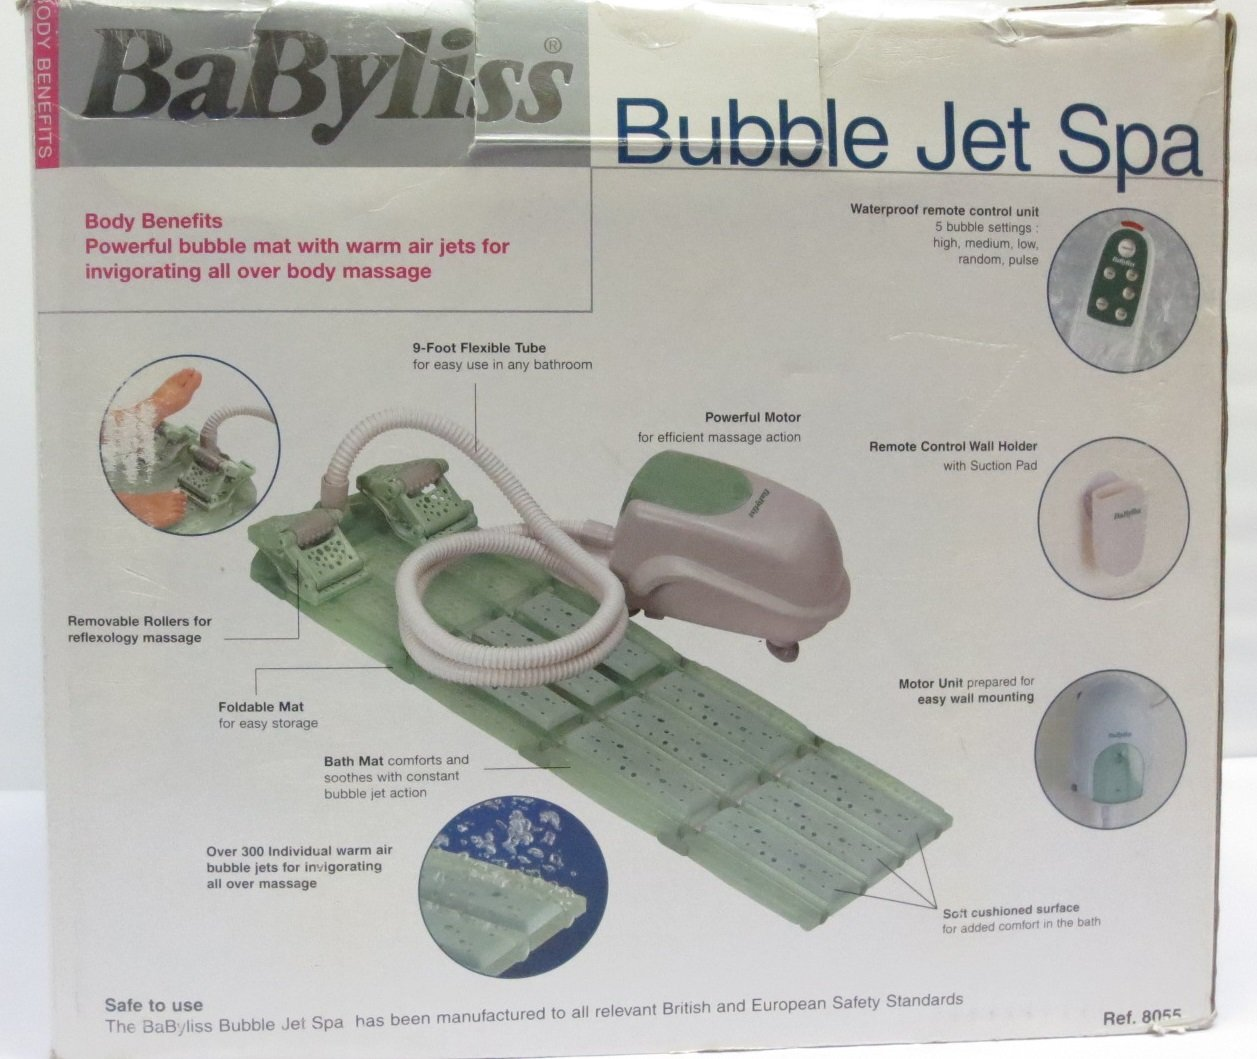 BaByliss BUBBLE JET SPA: Amazon.co.uk: Health & Personal Care